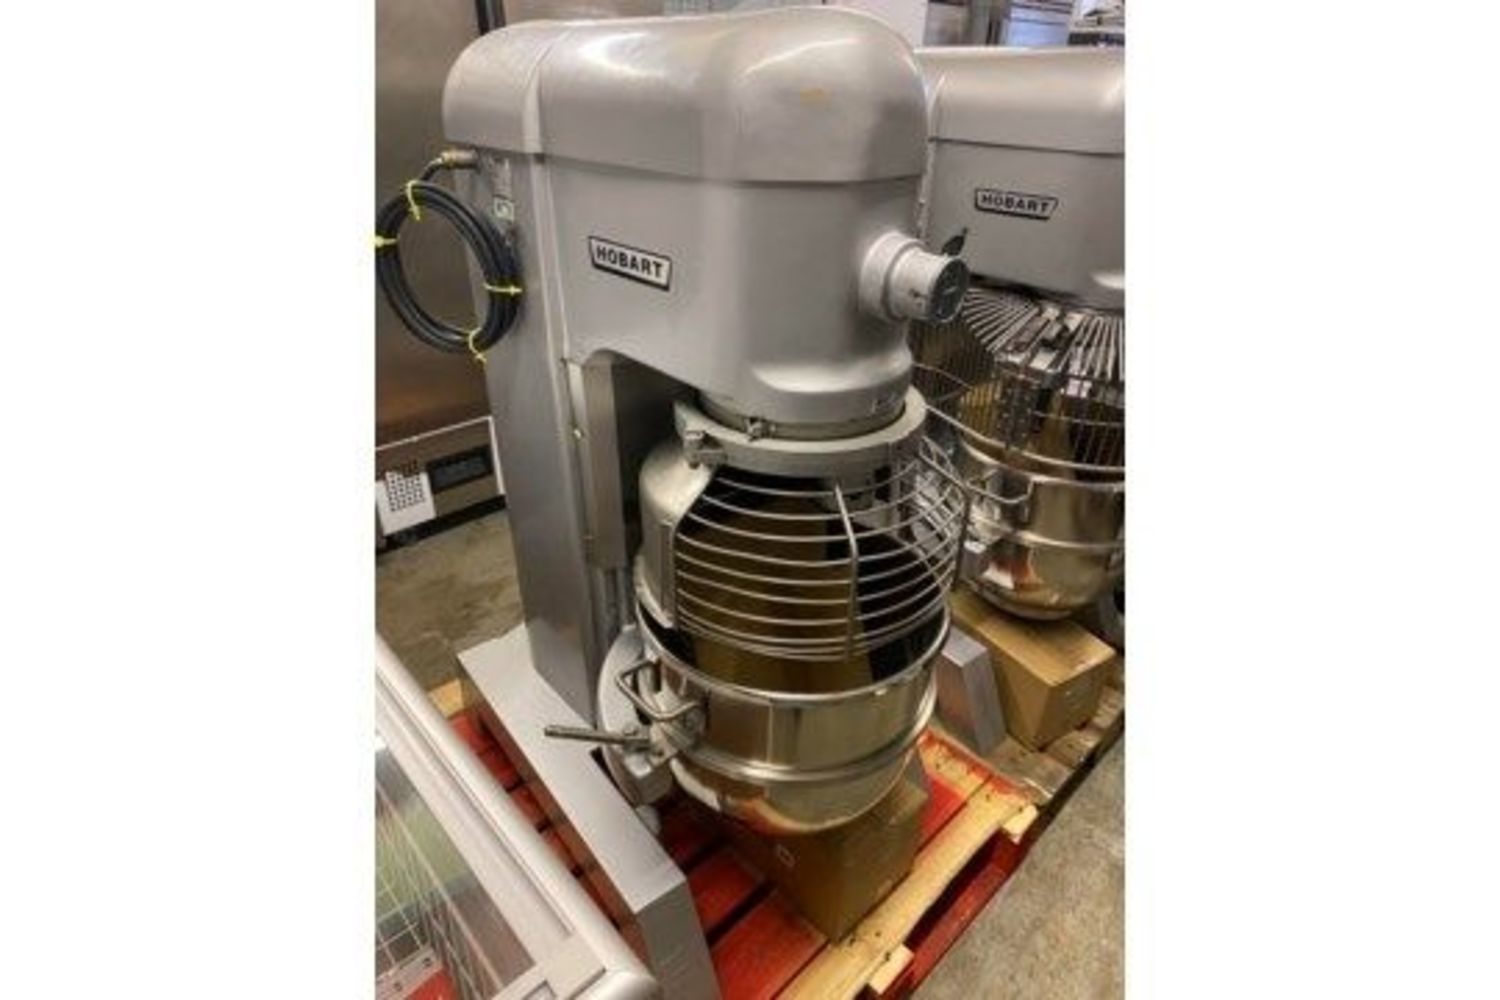 New and Used Commercial Catering Equipment,Typically from Restaurant, Pubs, Cafe Closures, Returns, Lease Snatchbacks, Also Large Selection of Ground Care Equipment and Related Items